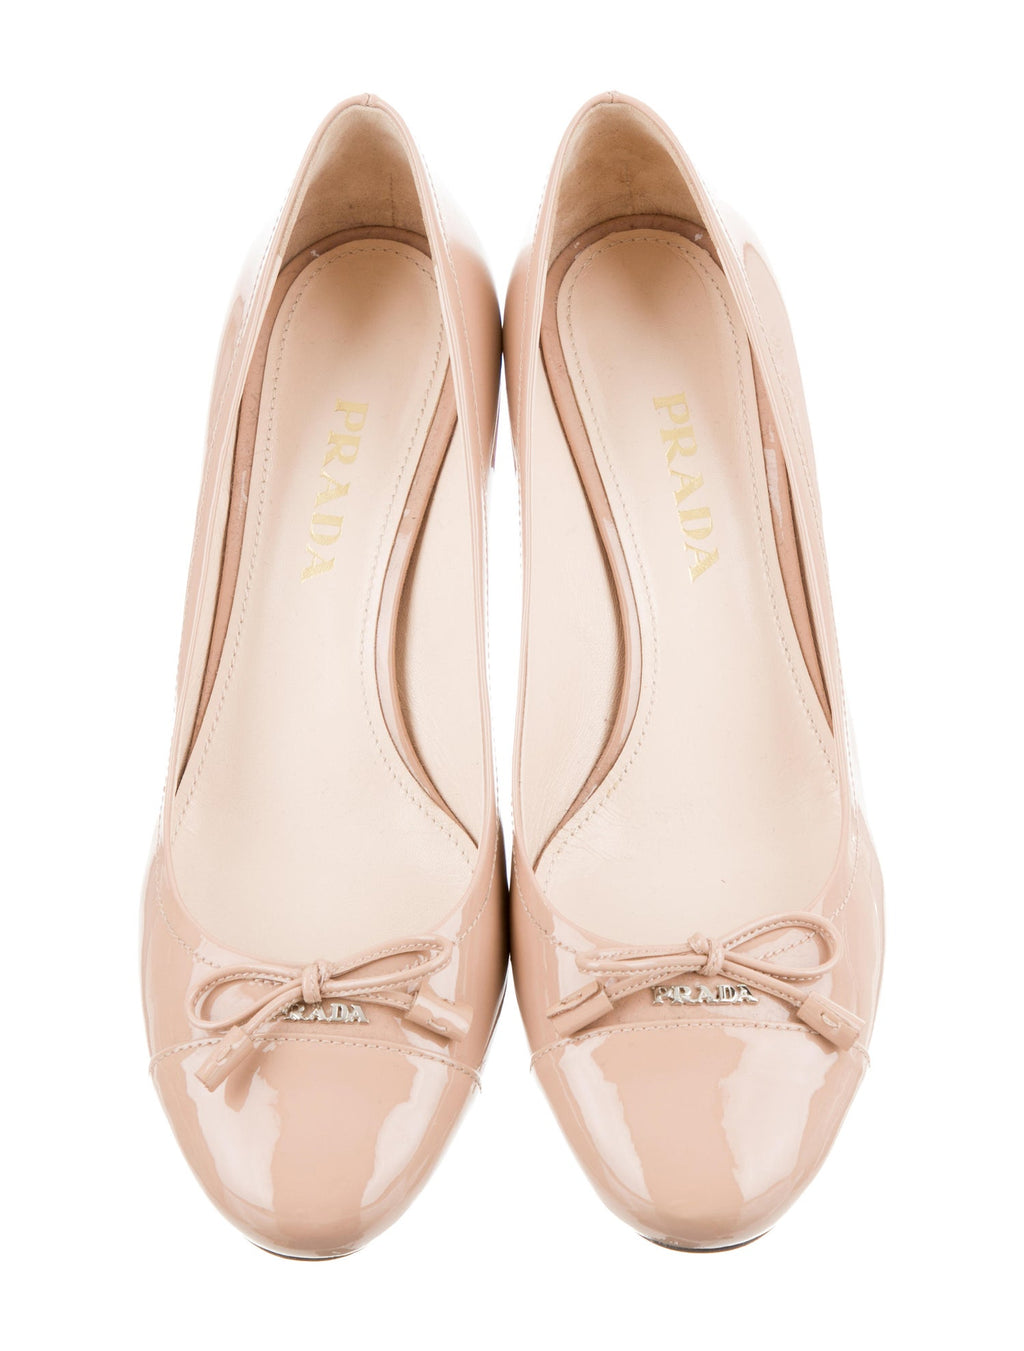 Prada Patent Leather Round-Toe Logo Pumps